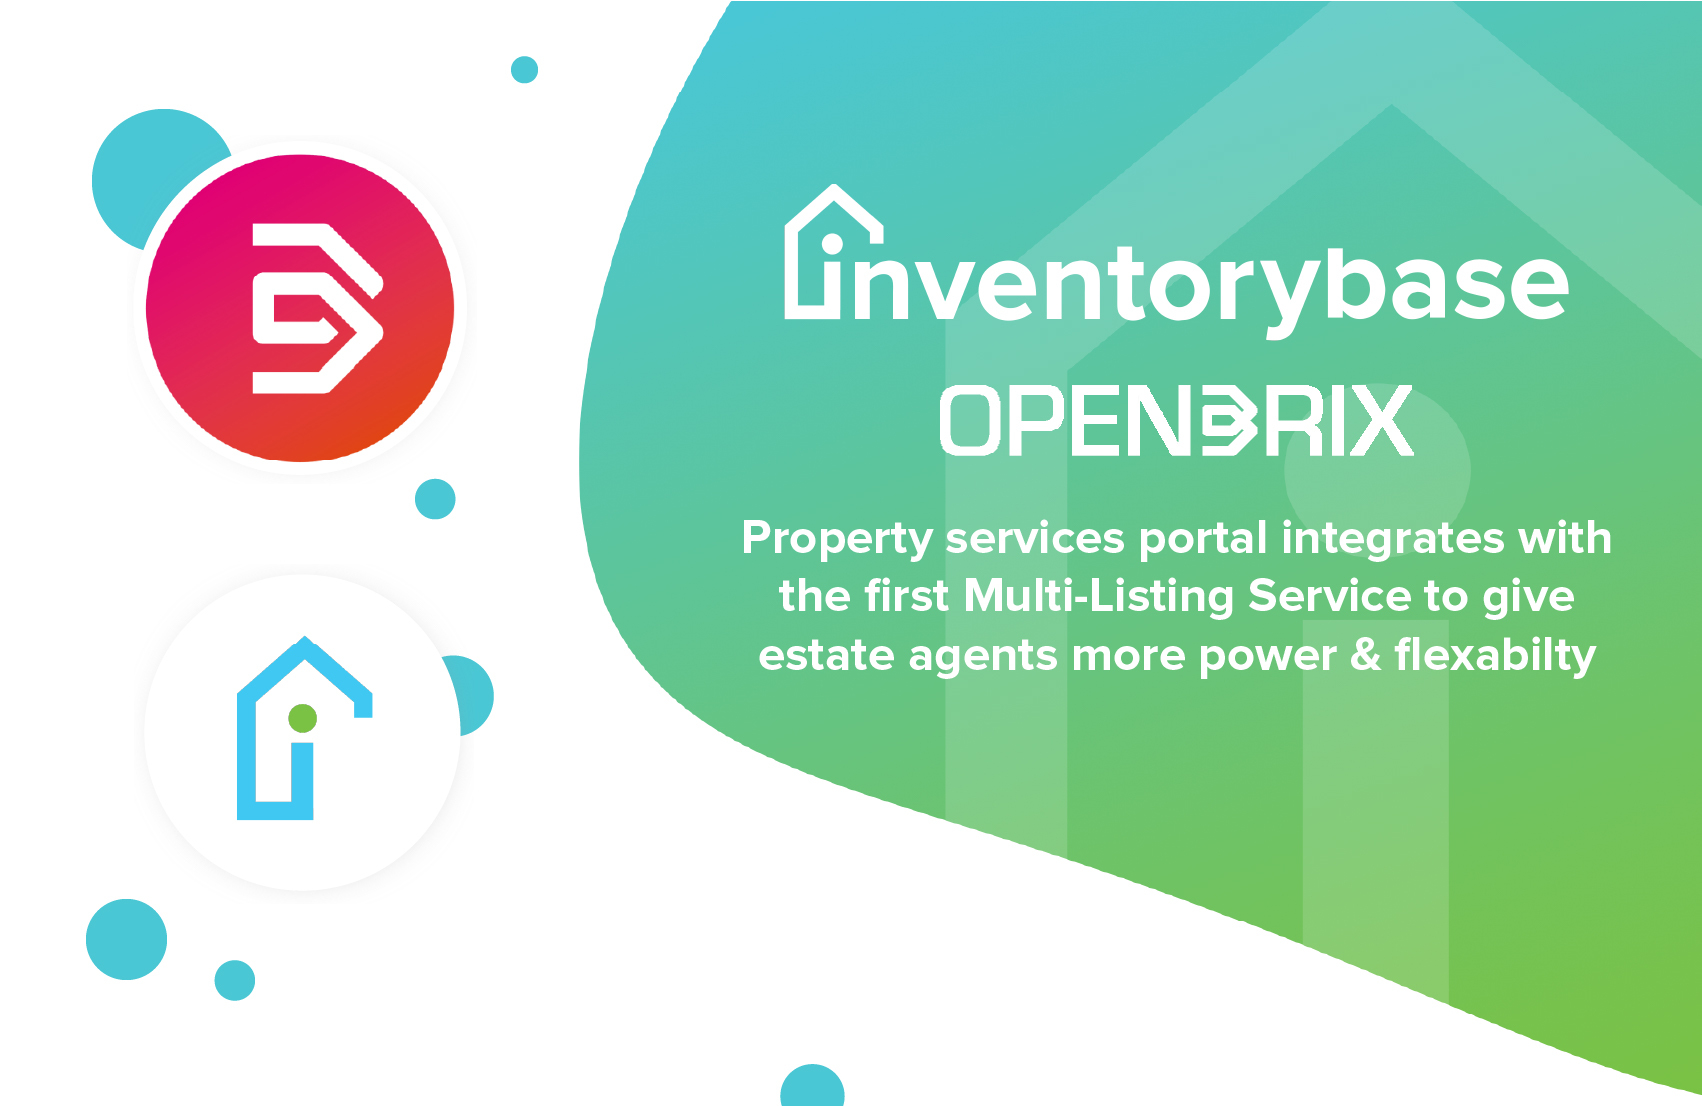 InventoryBase announces a new collaboration with OpenBrix